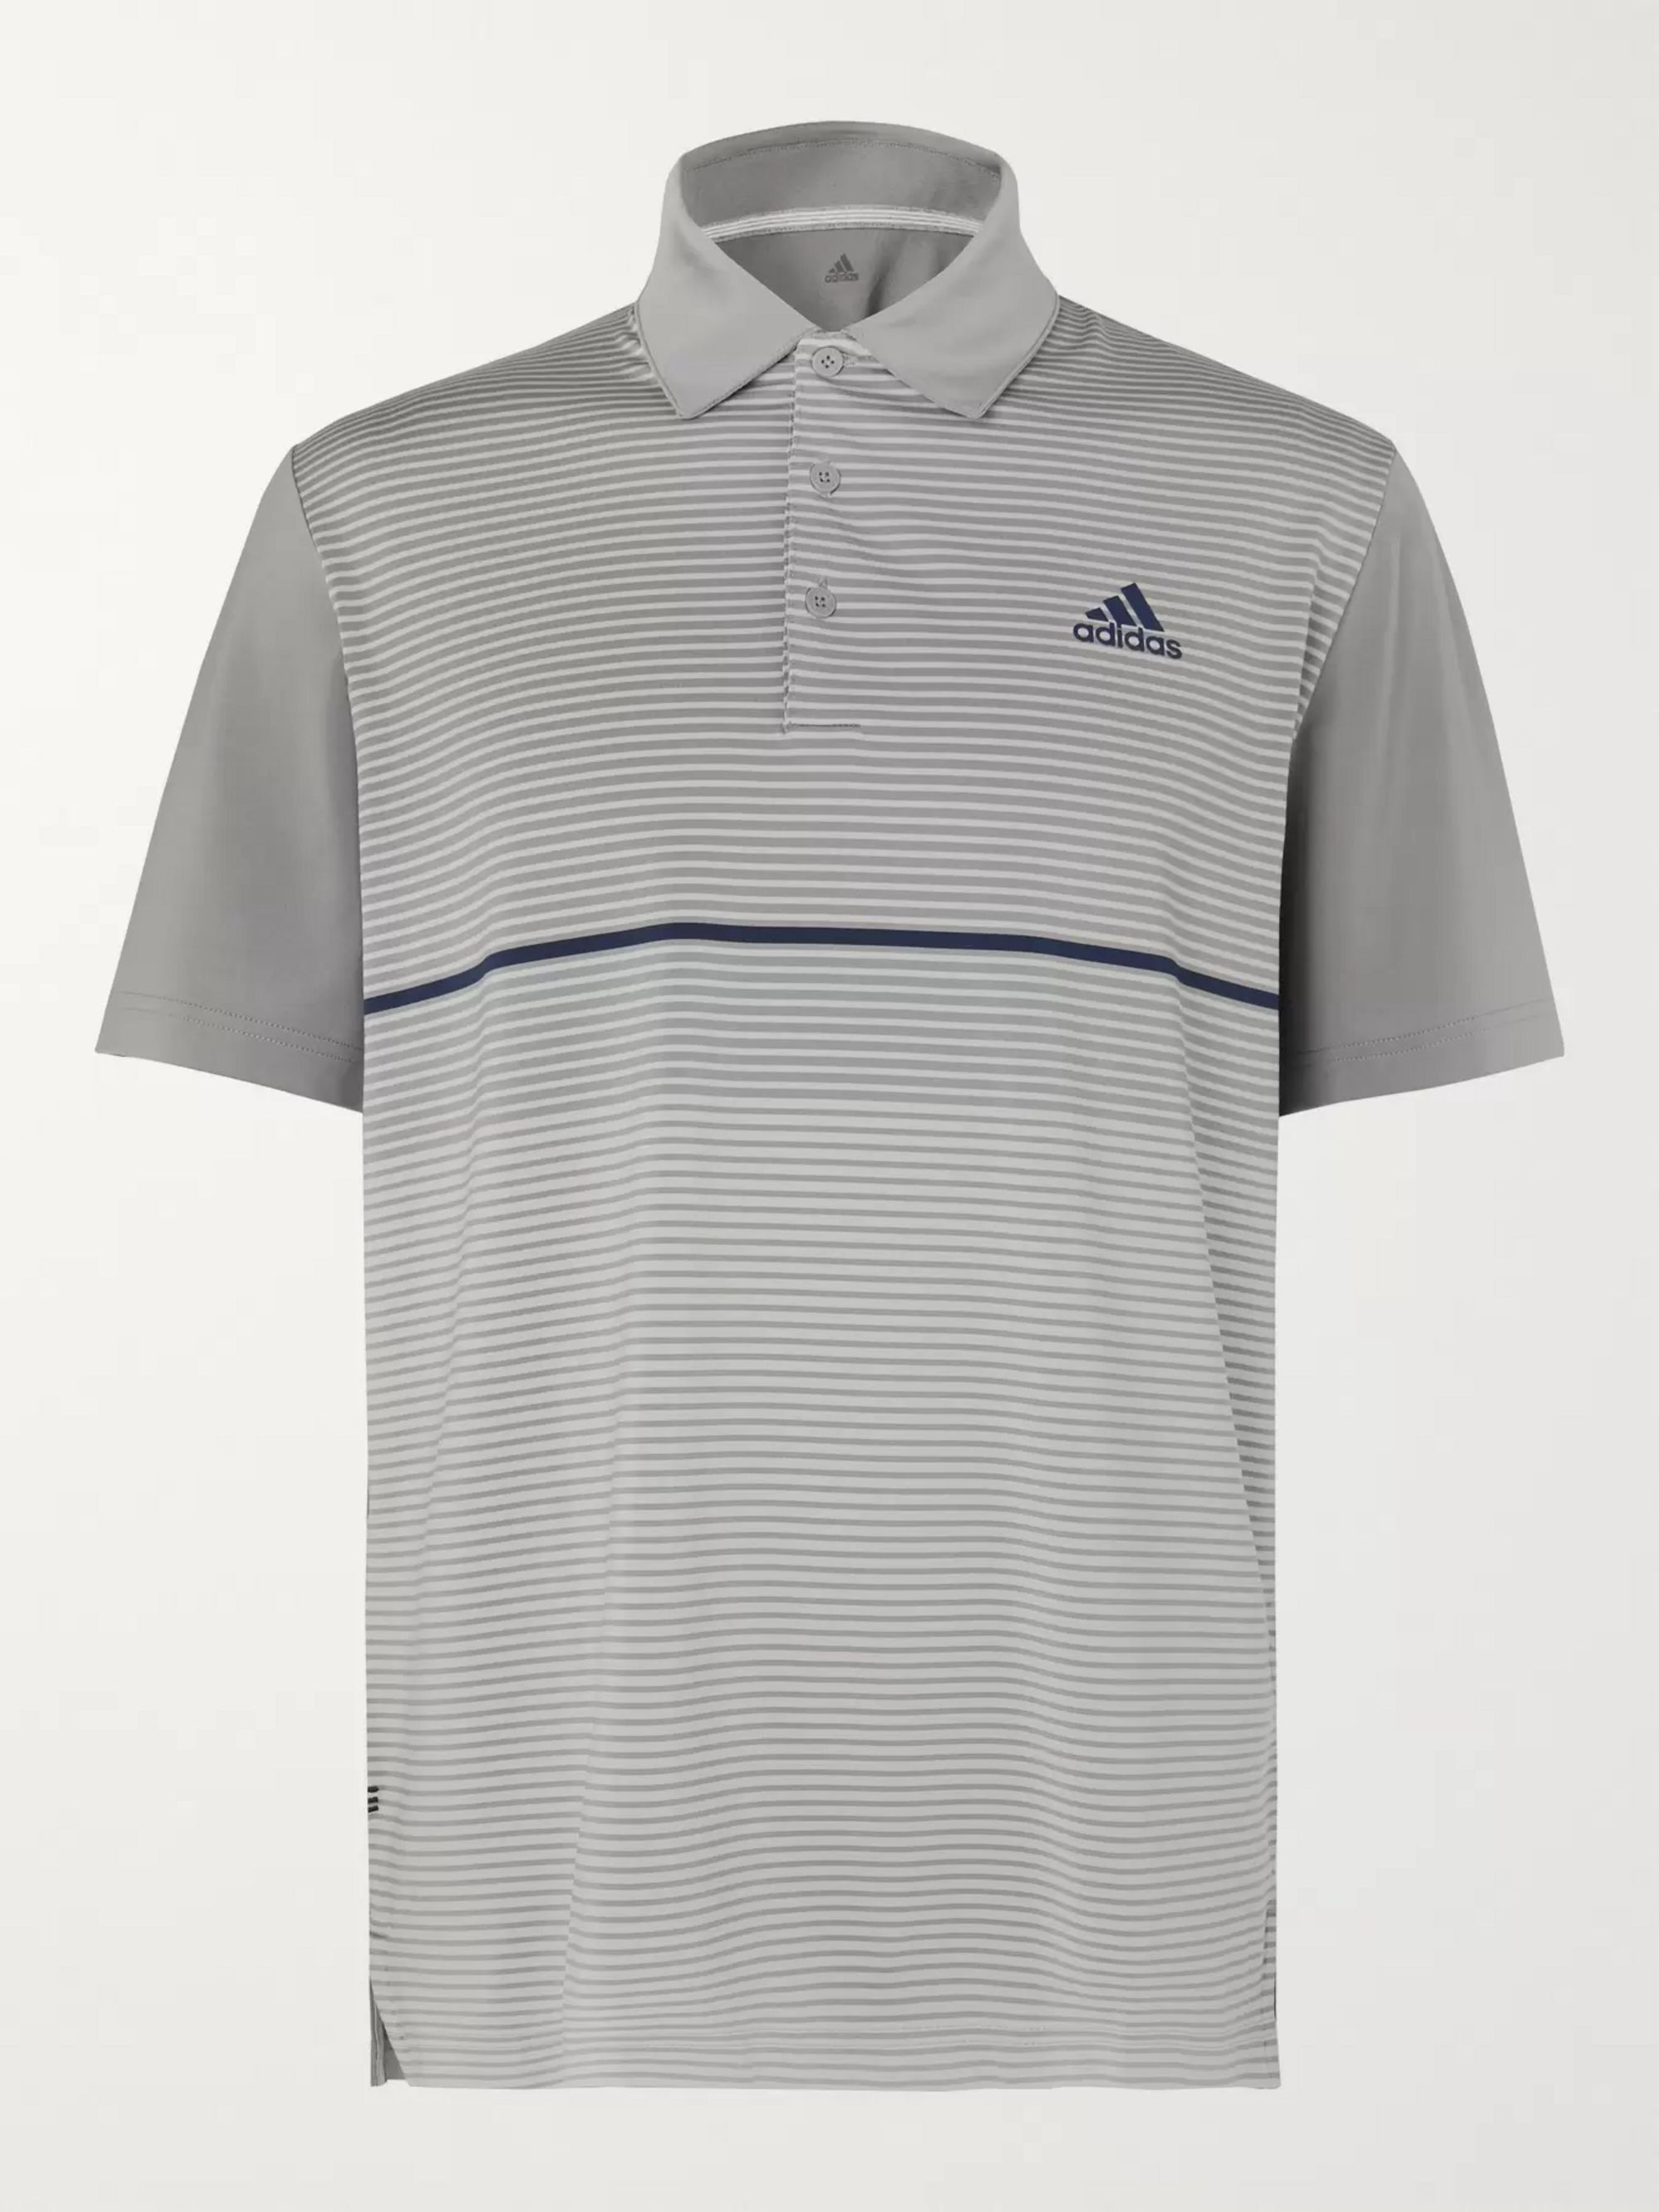 Adidas Golf Ultimate365 Striped Stretch-Jersey Golf Polo Shirt